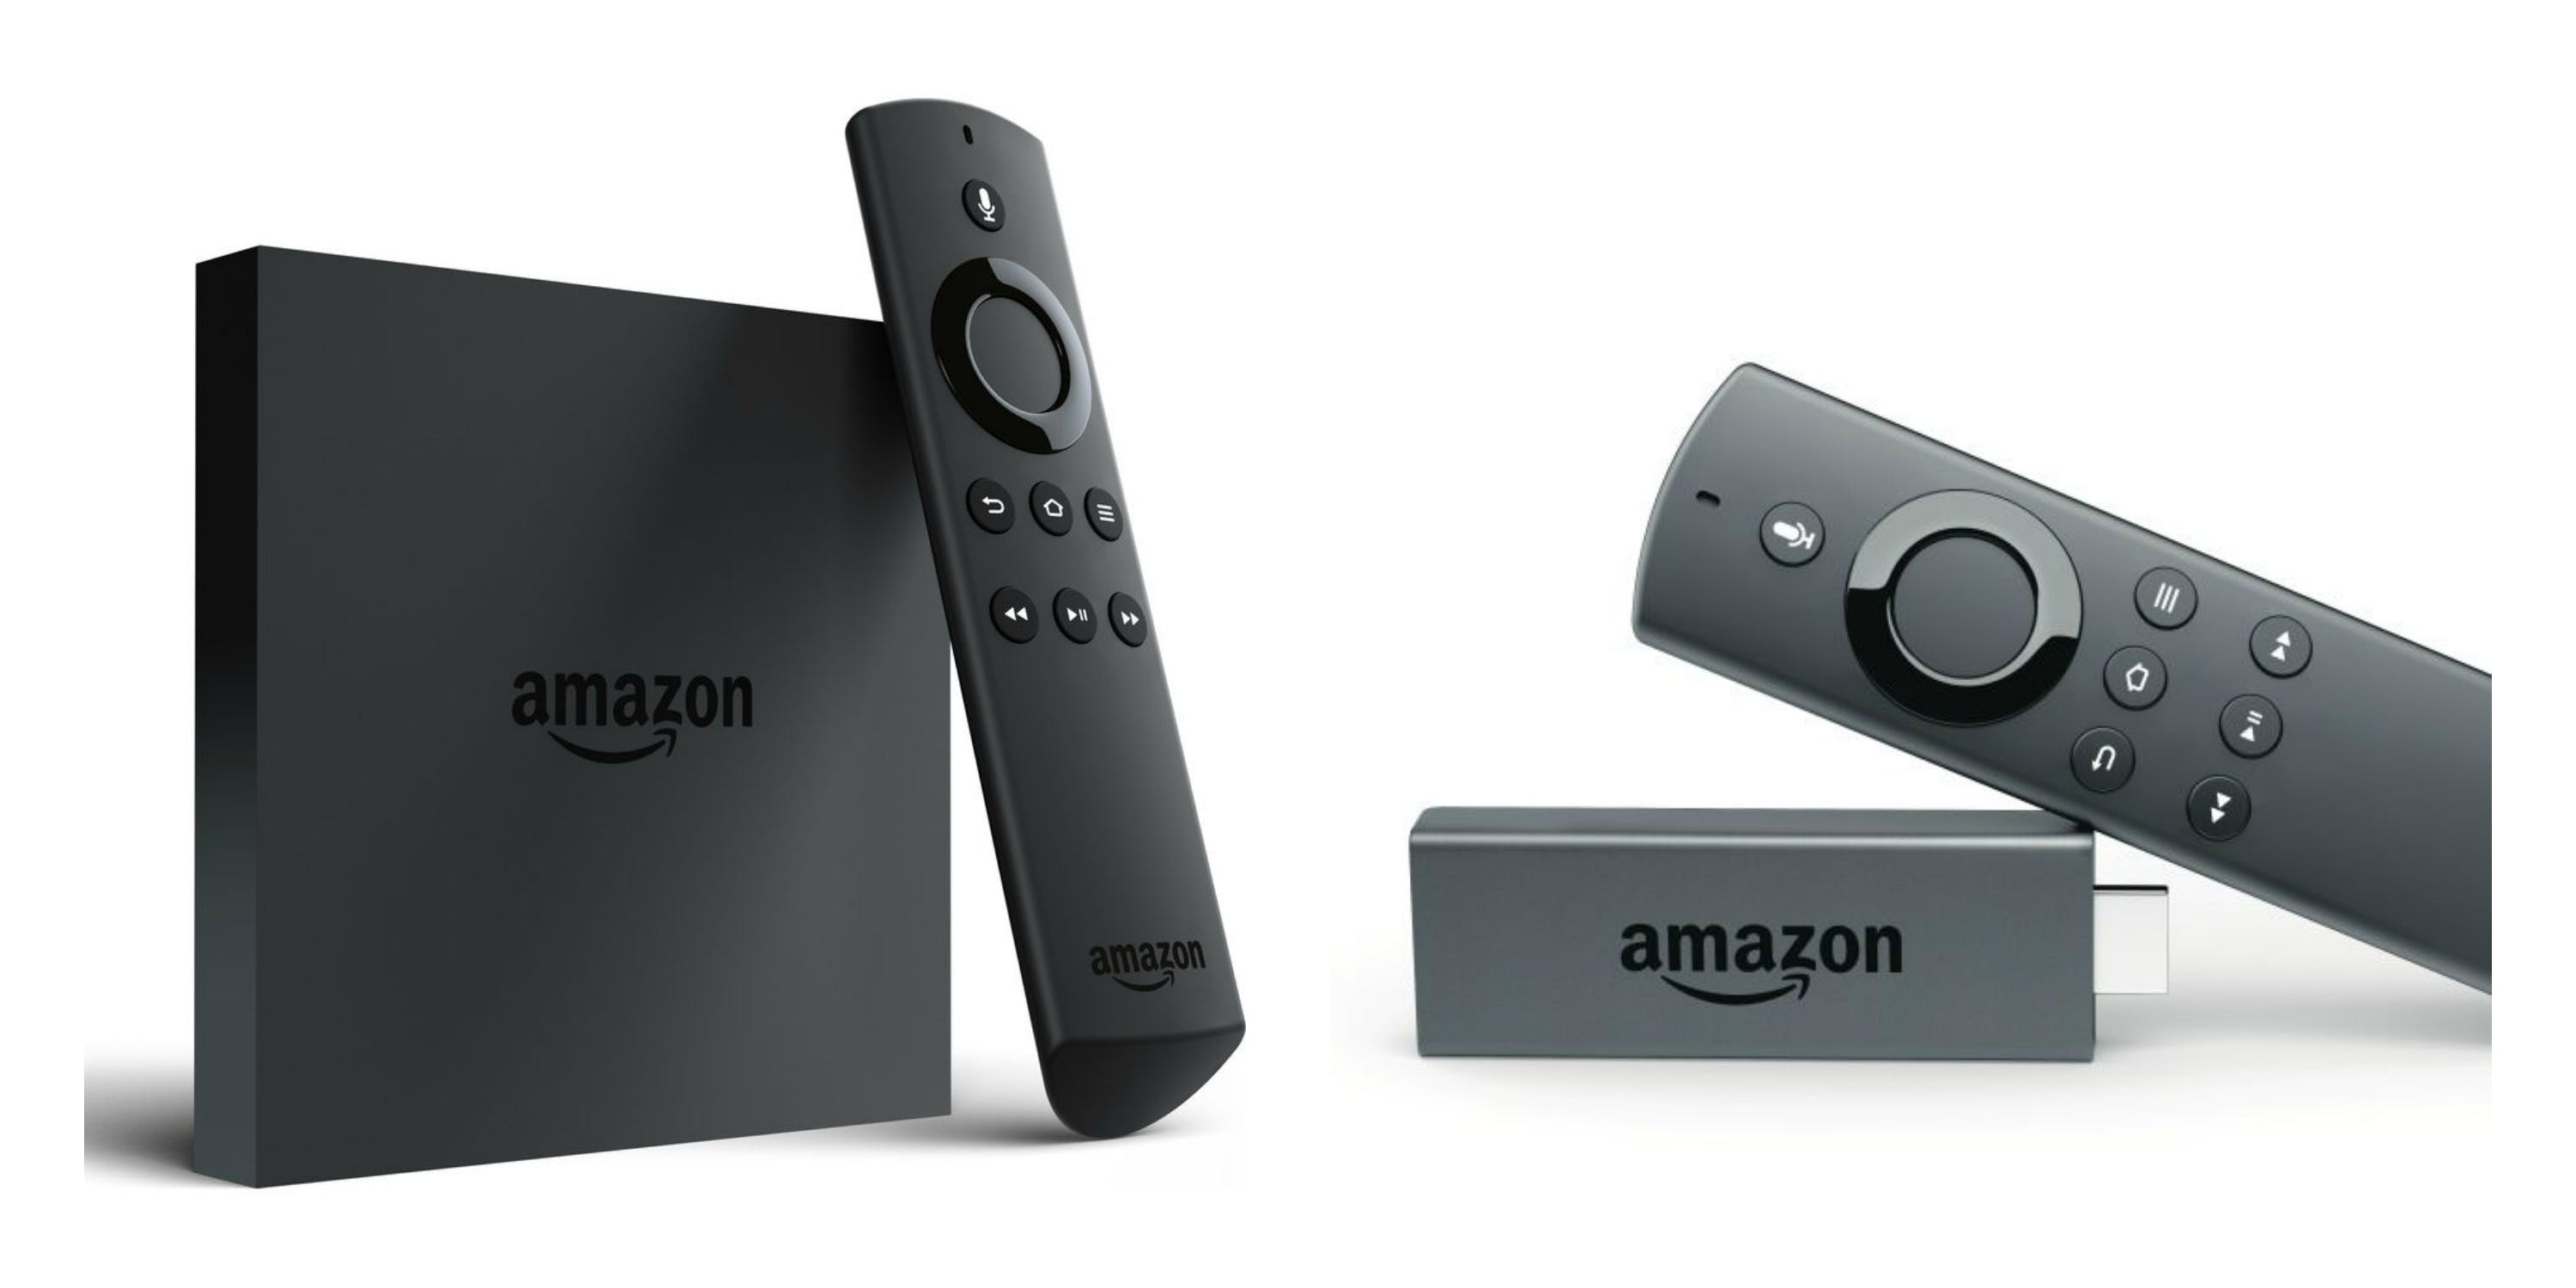 Amazon Fire TV devices